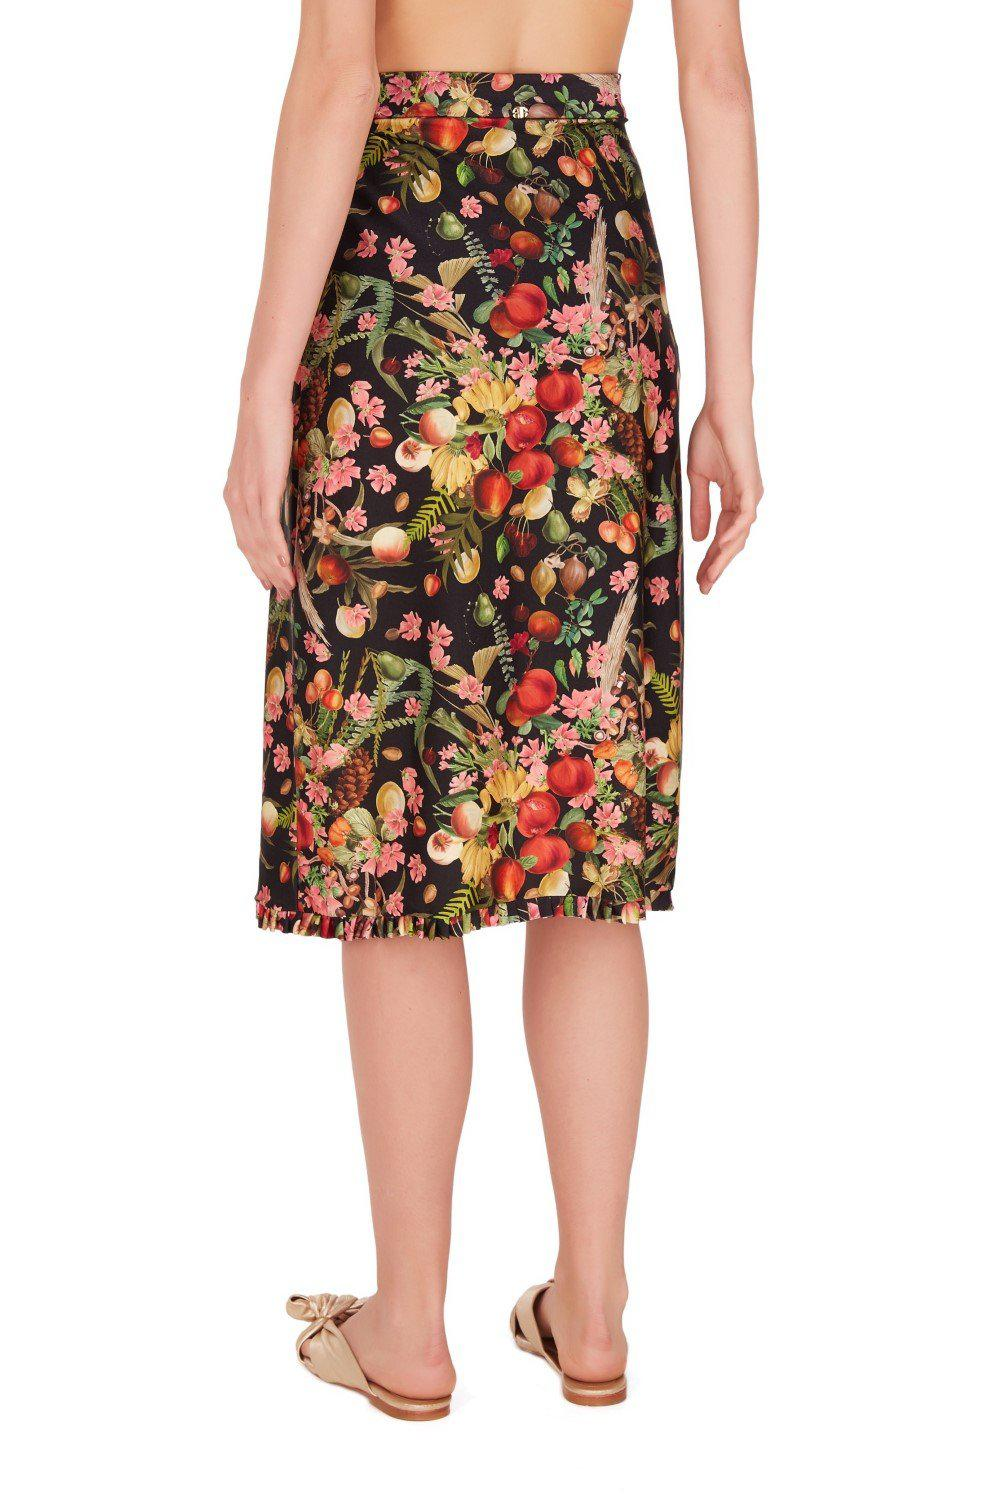 Fruits Exotiques Pareo Skirt with Frills 2